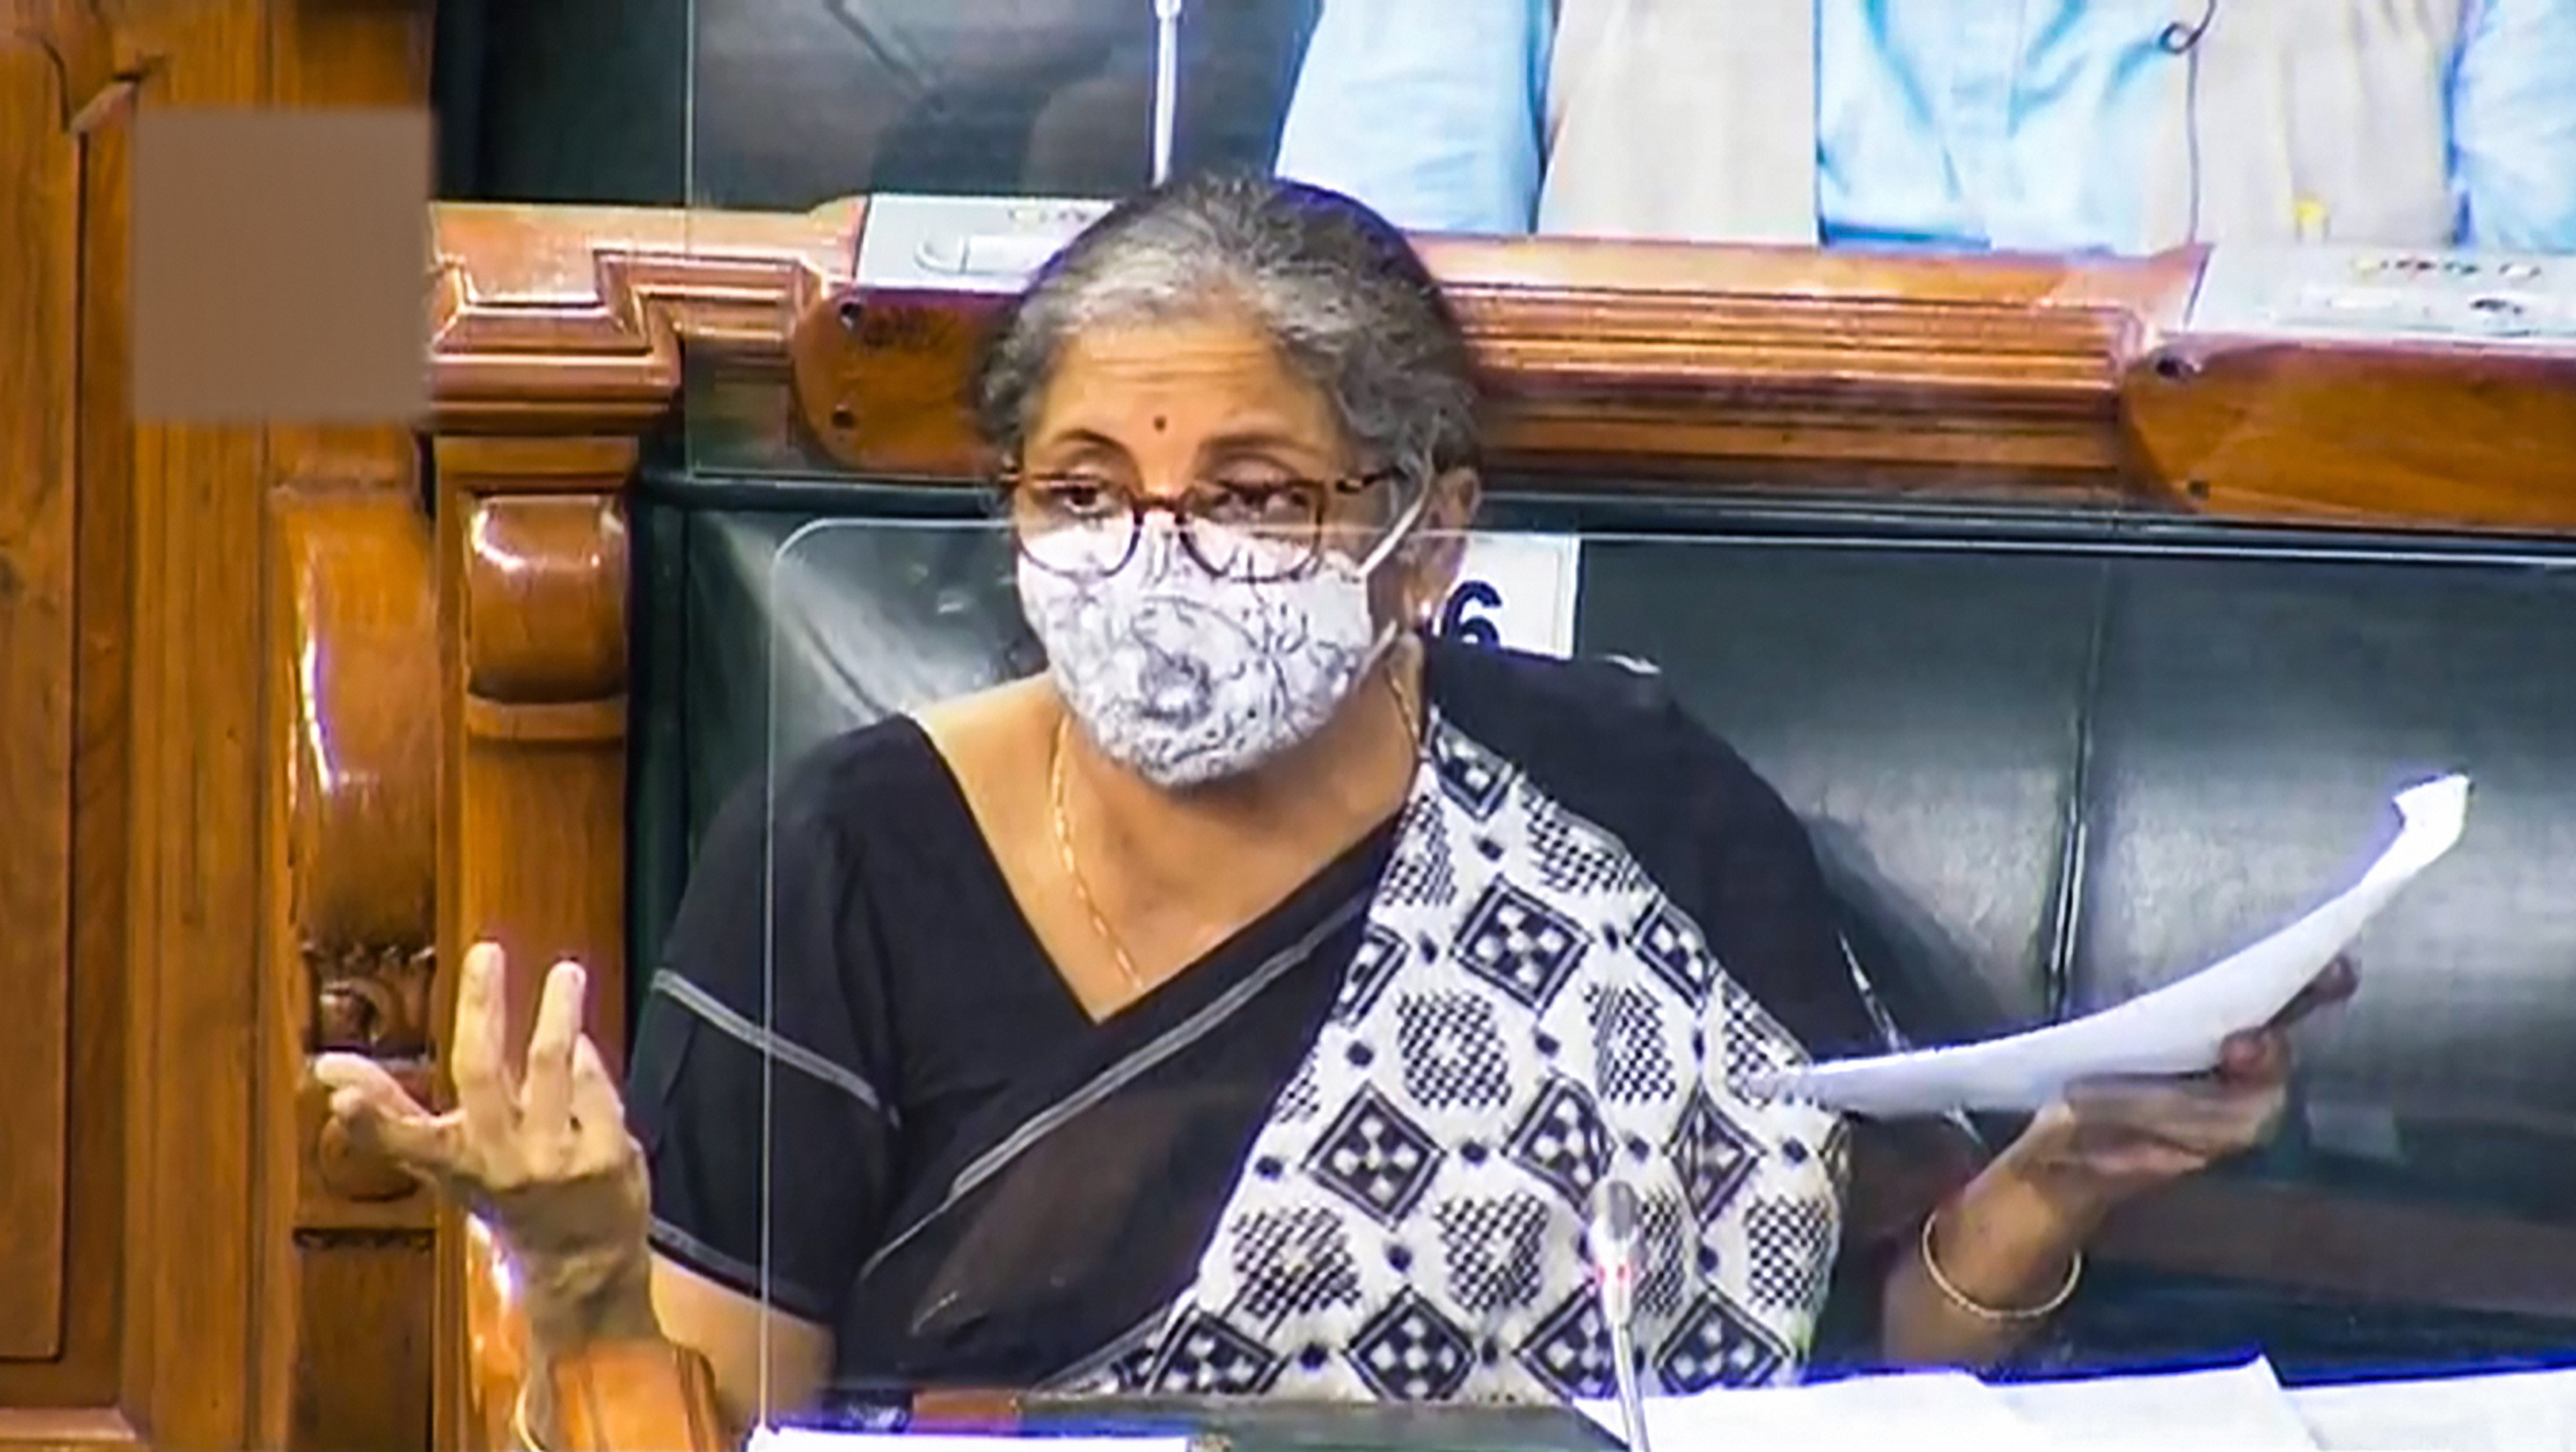 **EDS: VIDEO GRAB** New Delhi: Finance Minister Nirmala Sitharaman speaks in the Lok Sabha during the ongoing Monsoon Session of Parliament, at Parliament House in New Delhi, Saturday, Sept. 19, 2020. (LSTV/PTI Photo)(PTI19-09-2020_000228B)